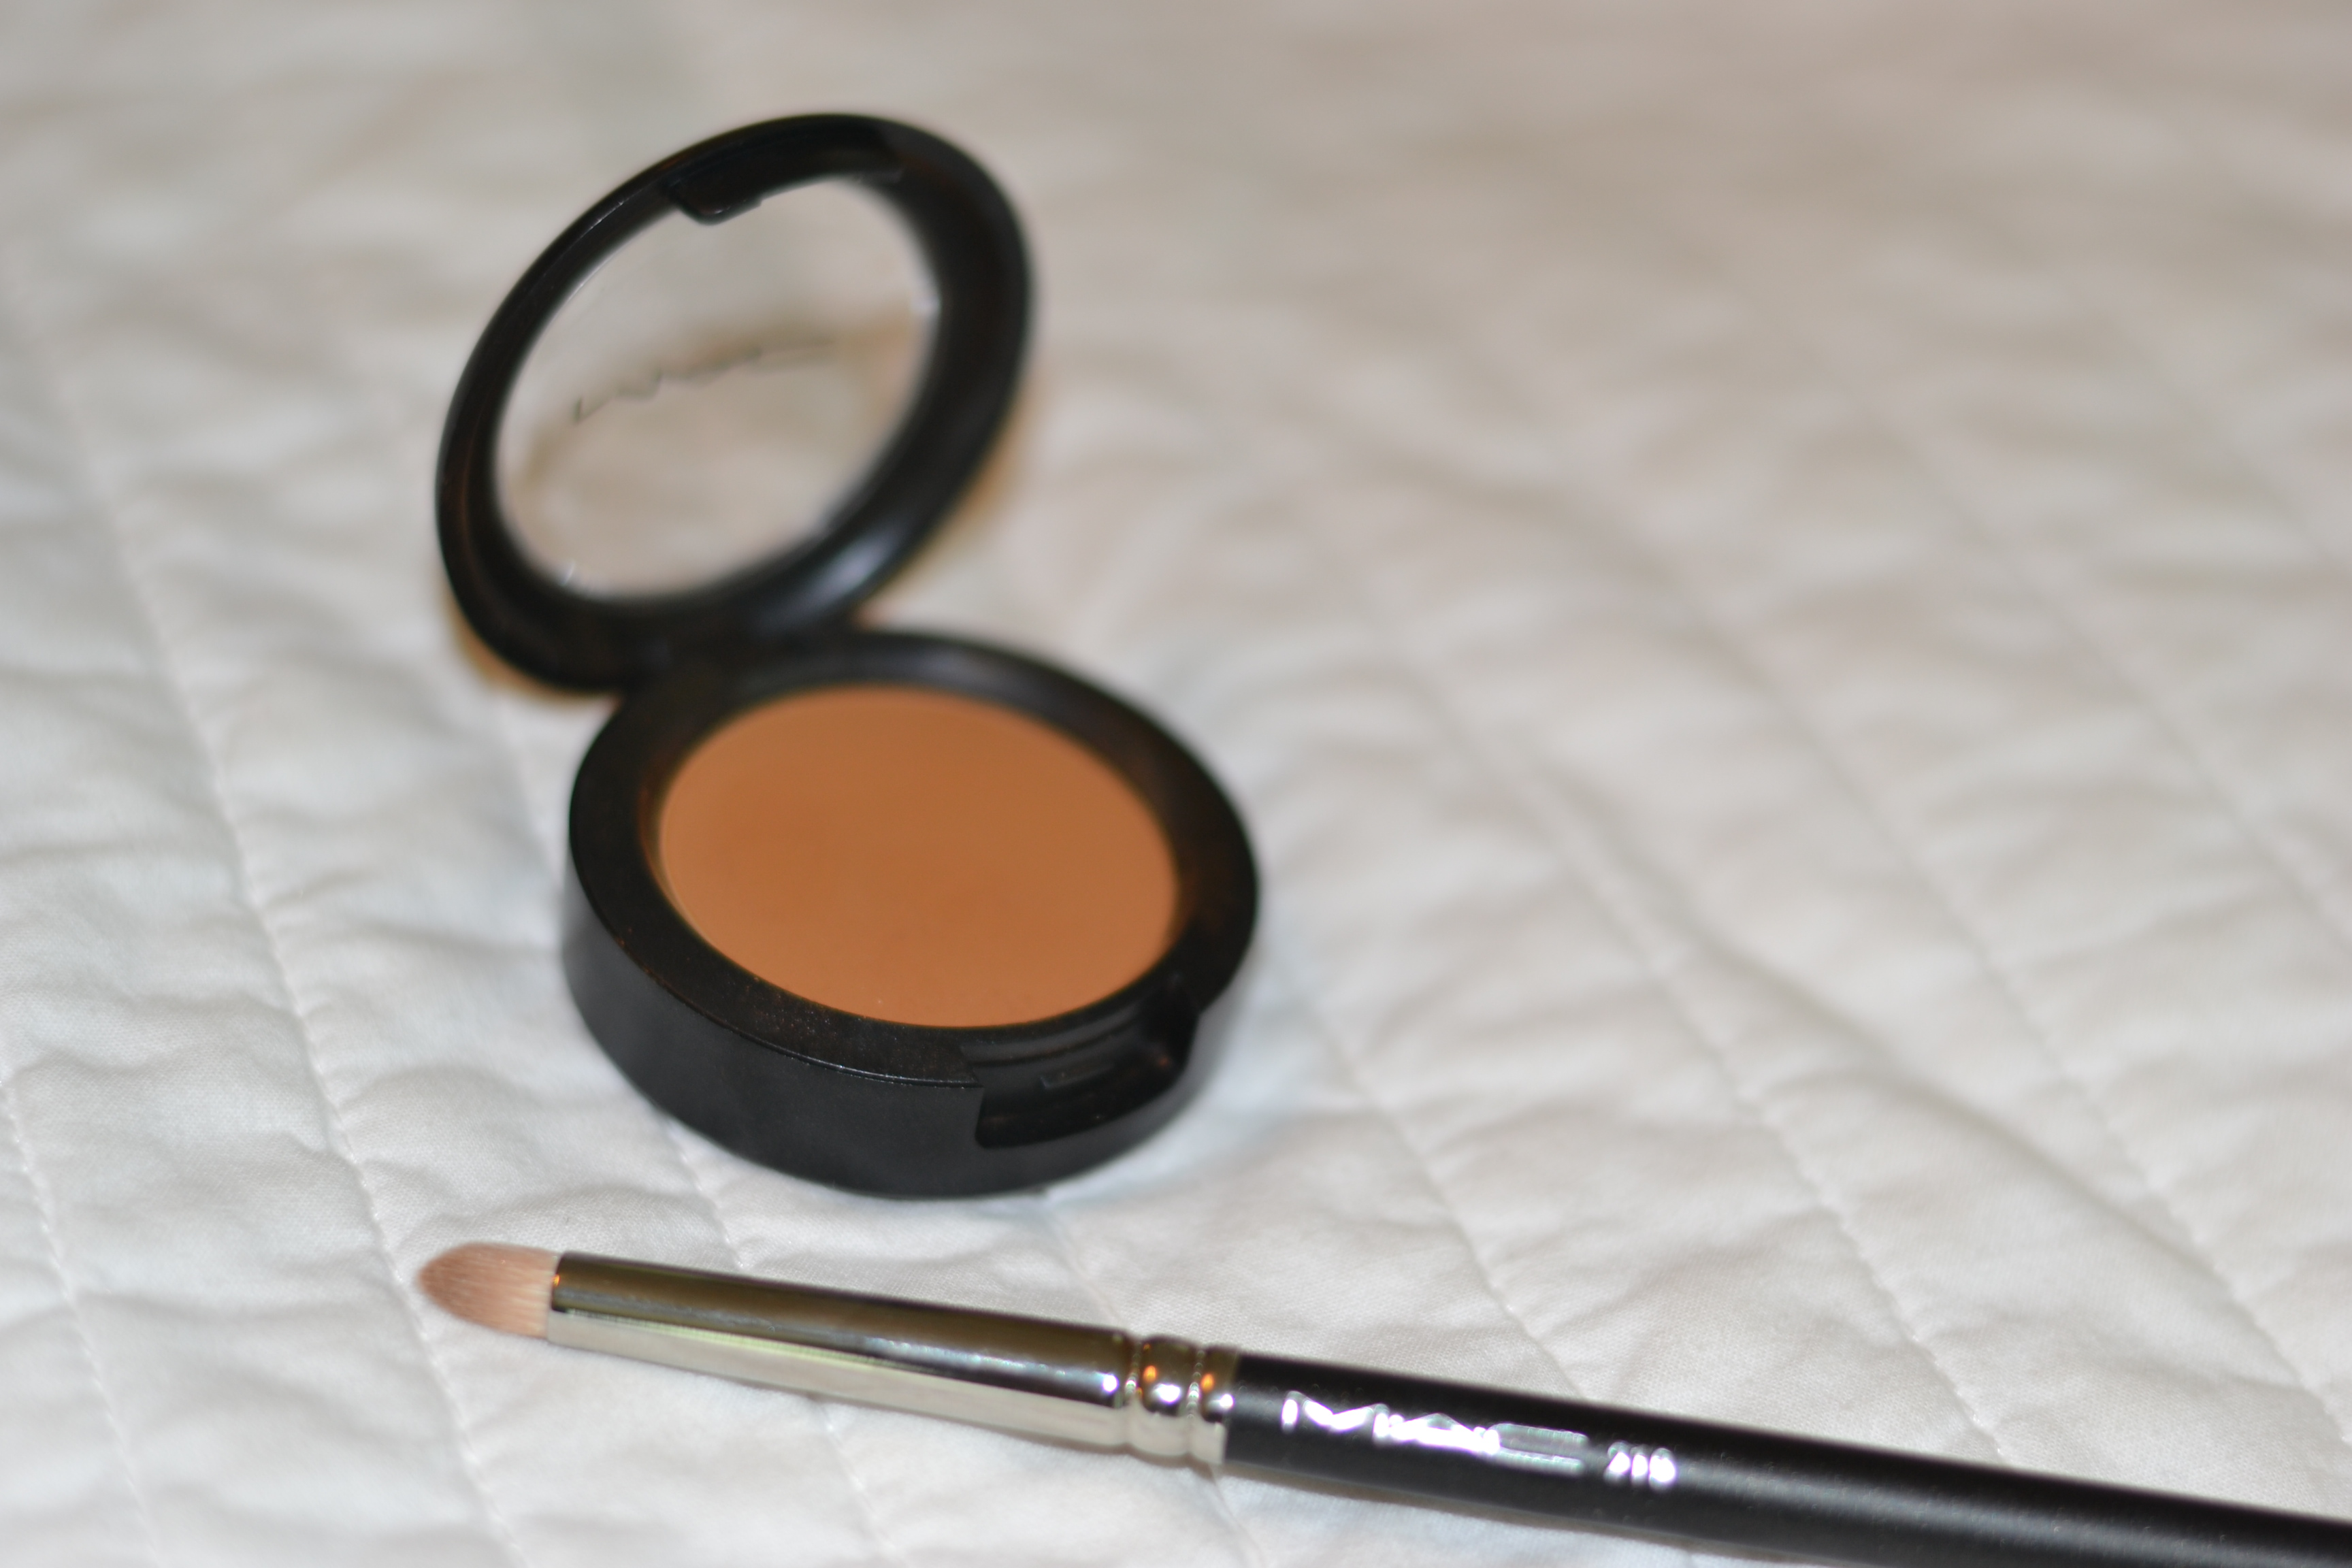 Best Mac Eyeshadow For Light Brown Eyes - The Best Makeup Tips and ...